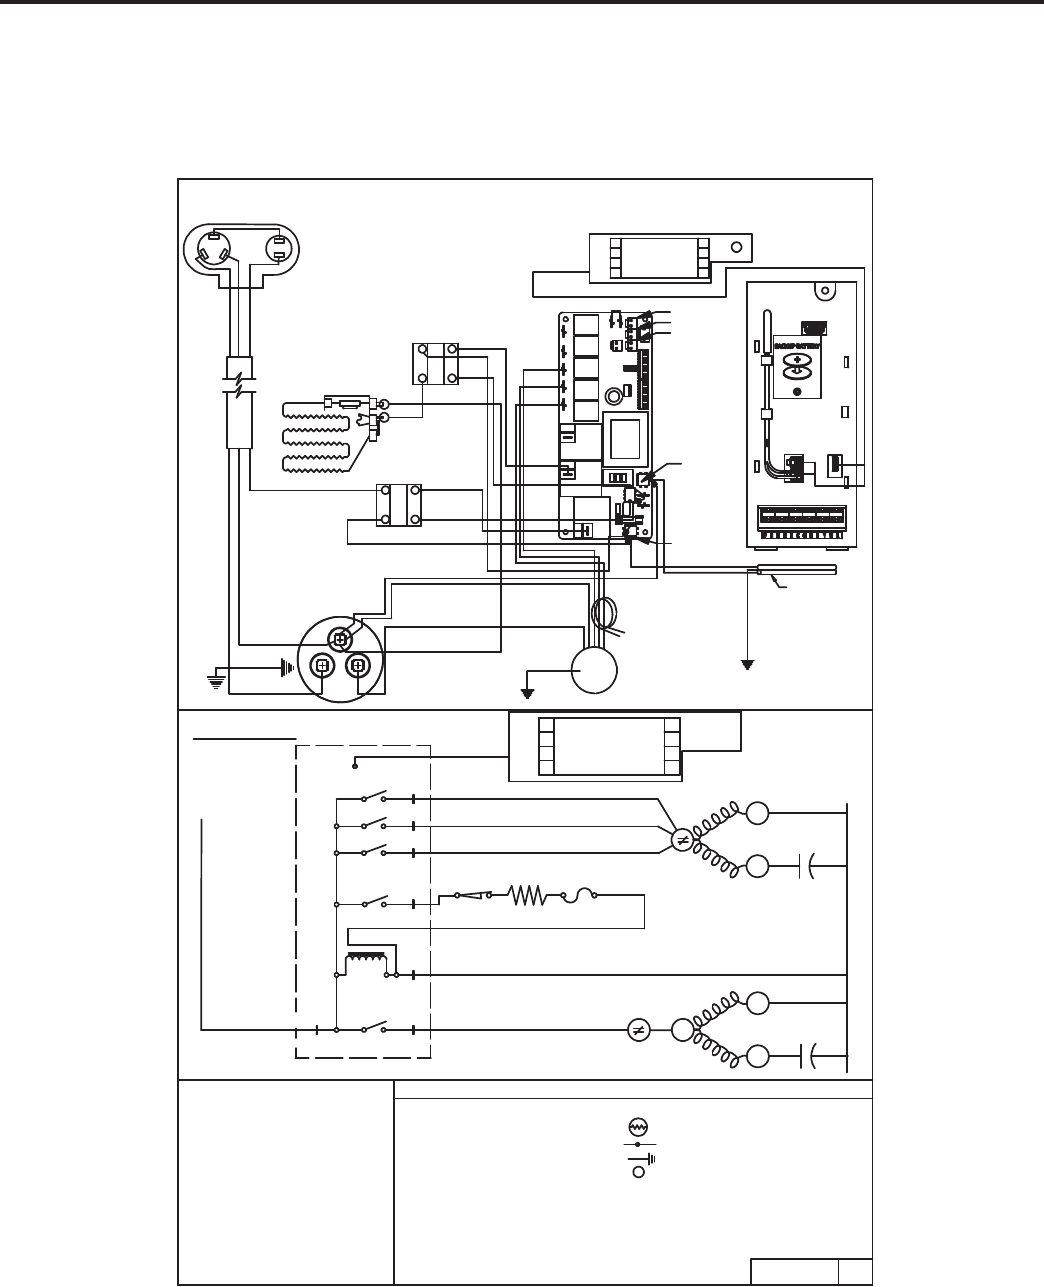 Friedrich R410a Cool With Electric Heat Model El36m35a. Wiring. Friedrich Capacitor Wire Diagram At Scoala.co